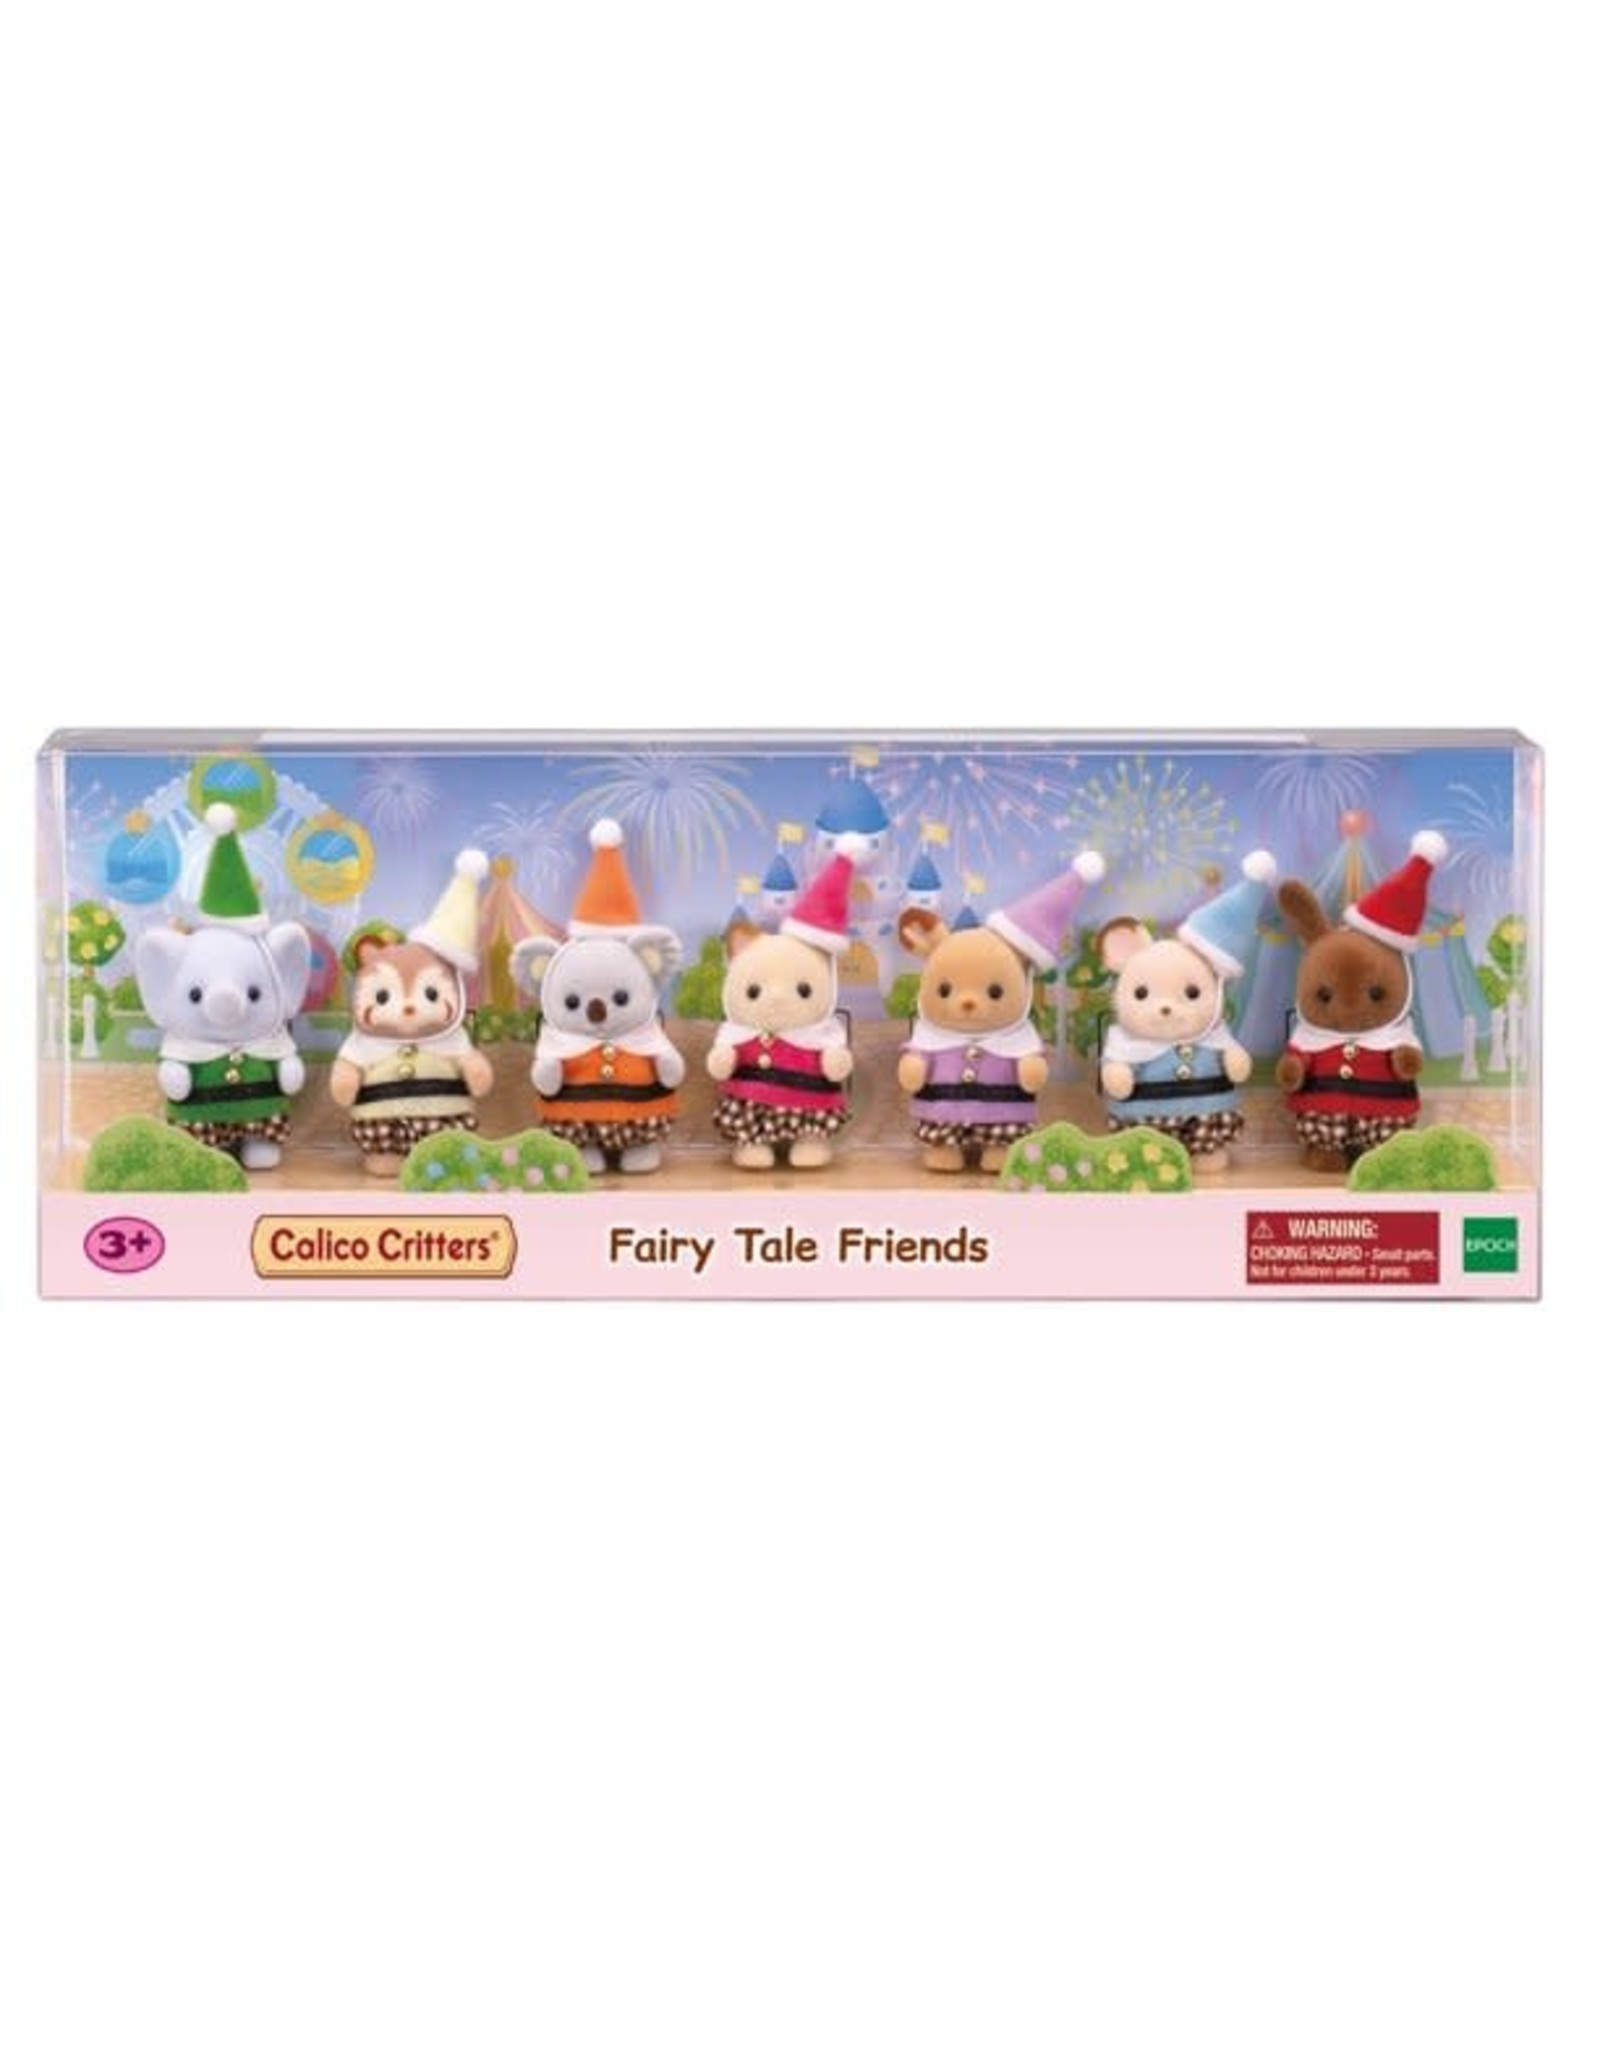 Calico Critters Calico Critters Fairy Tale Friends